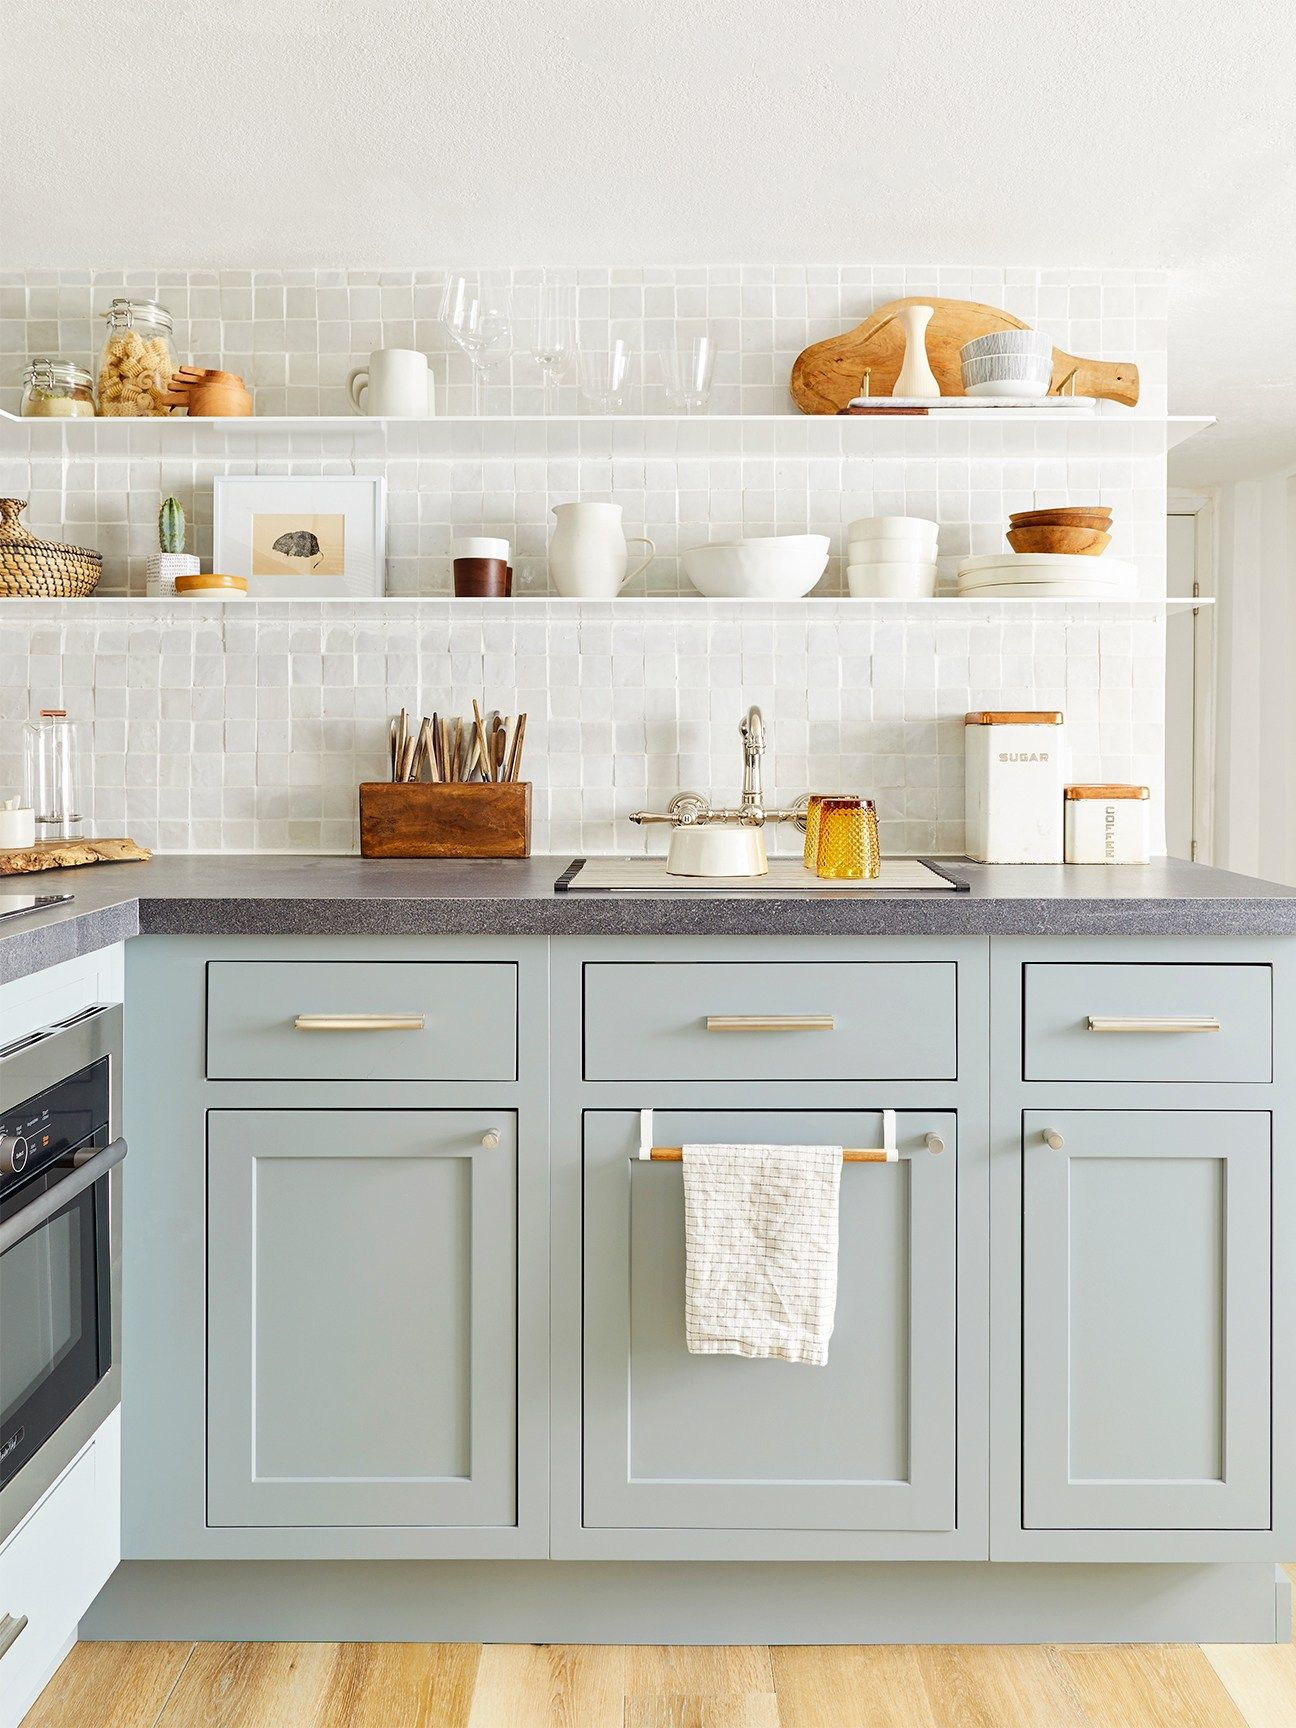 5 Kitchen Cabinet Colors Set To Take Over In 2020 Best Kitchen Cabinets Popular Kitchen Colors Kitchen Renovation